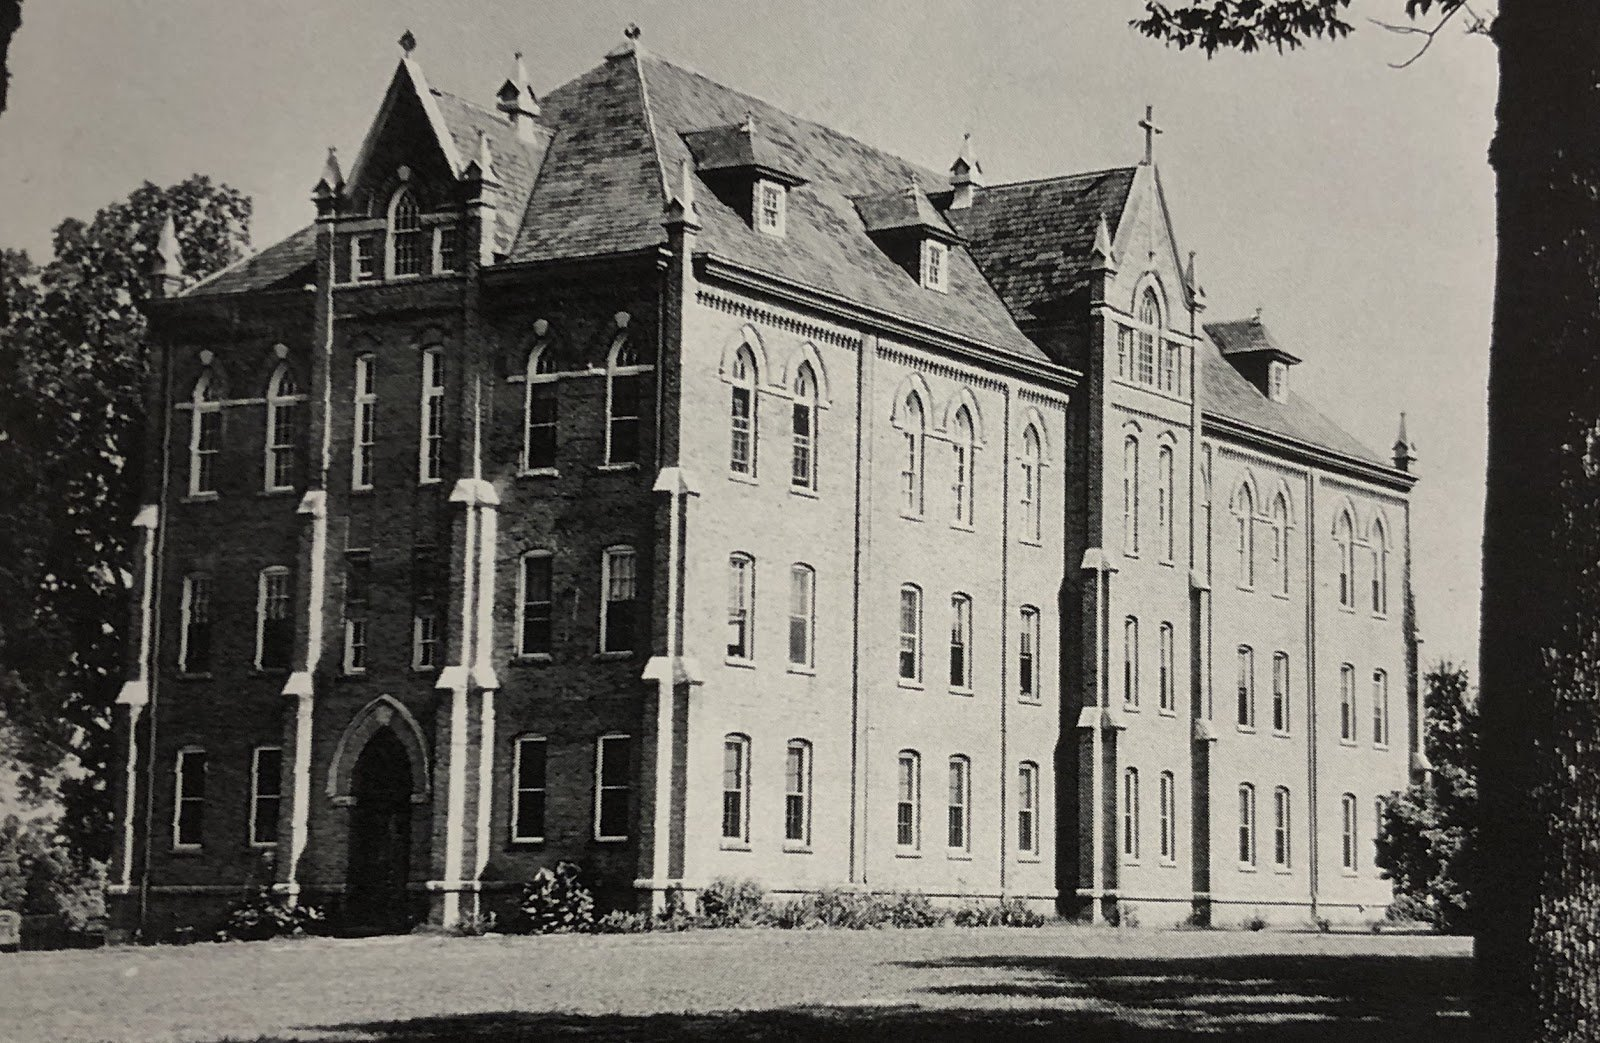 St. Leo's Hall in the mid-20th Century. Source: Paschal Baumstein, Blessings in the Years to Come (1997)